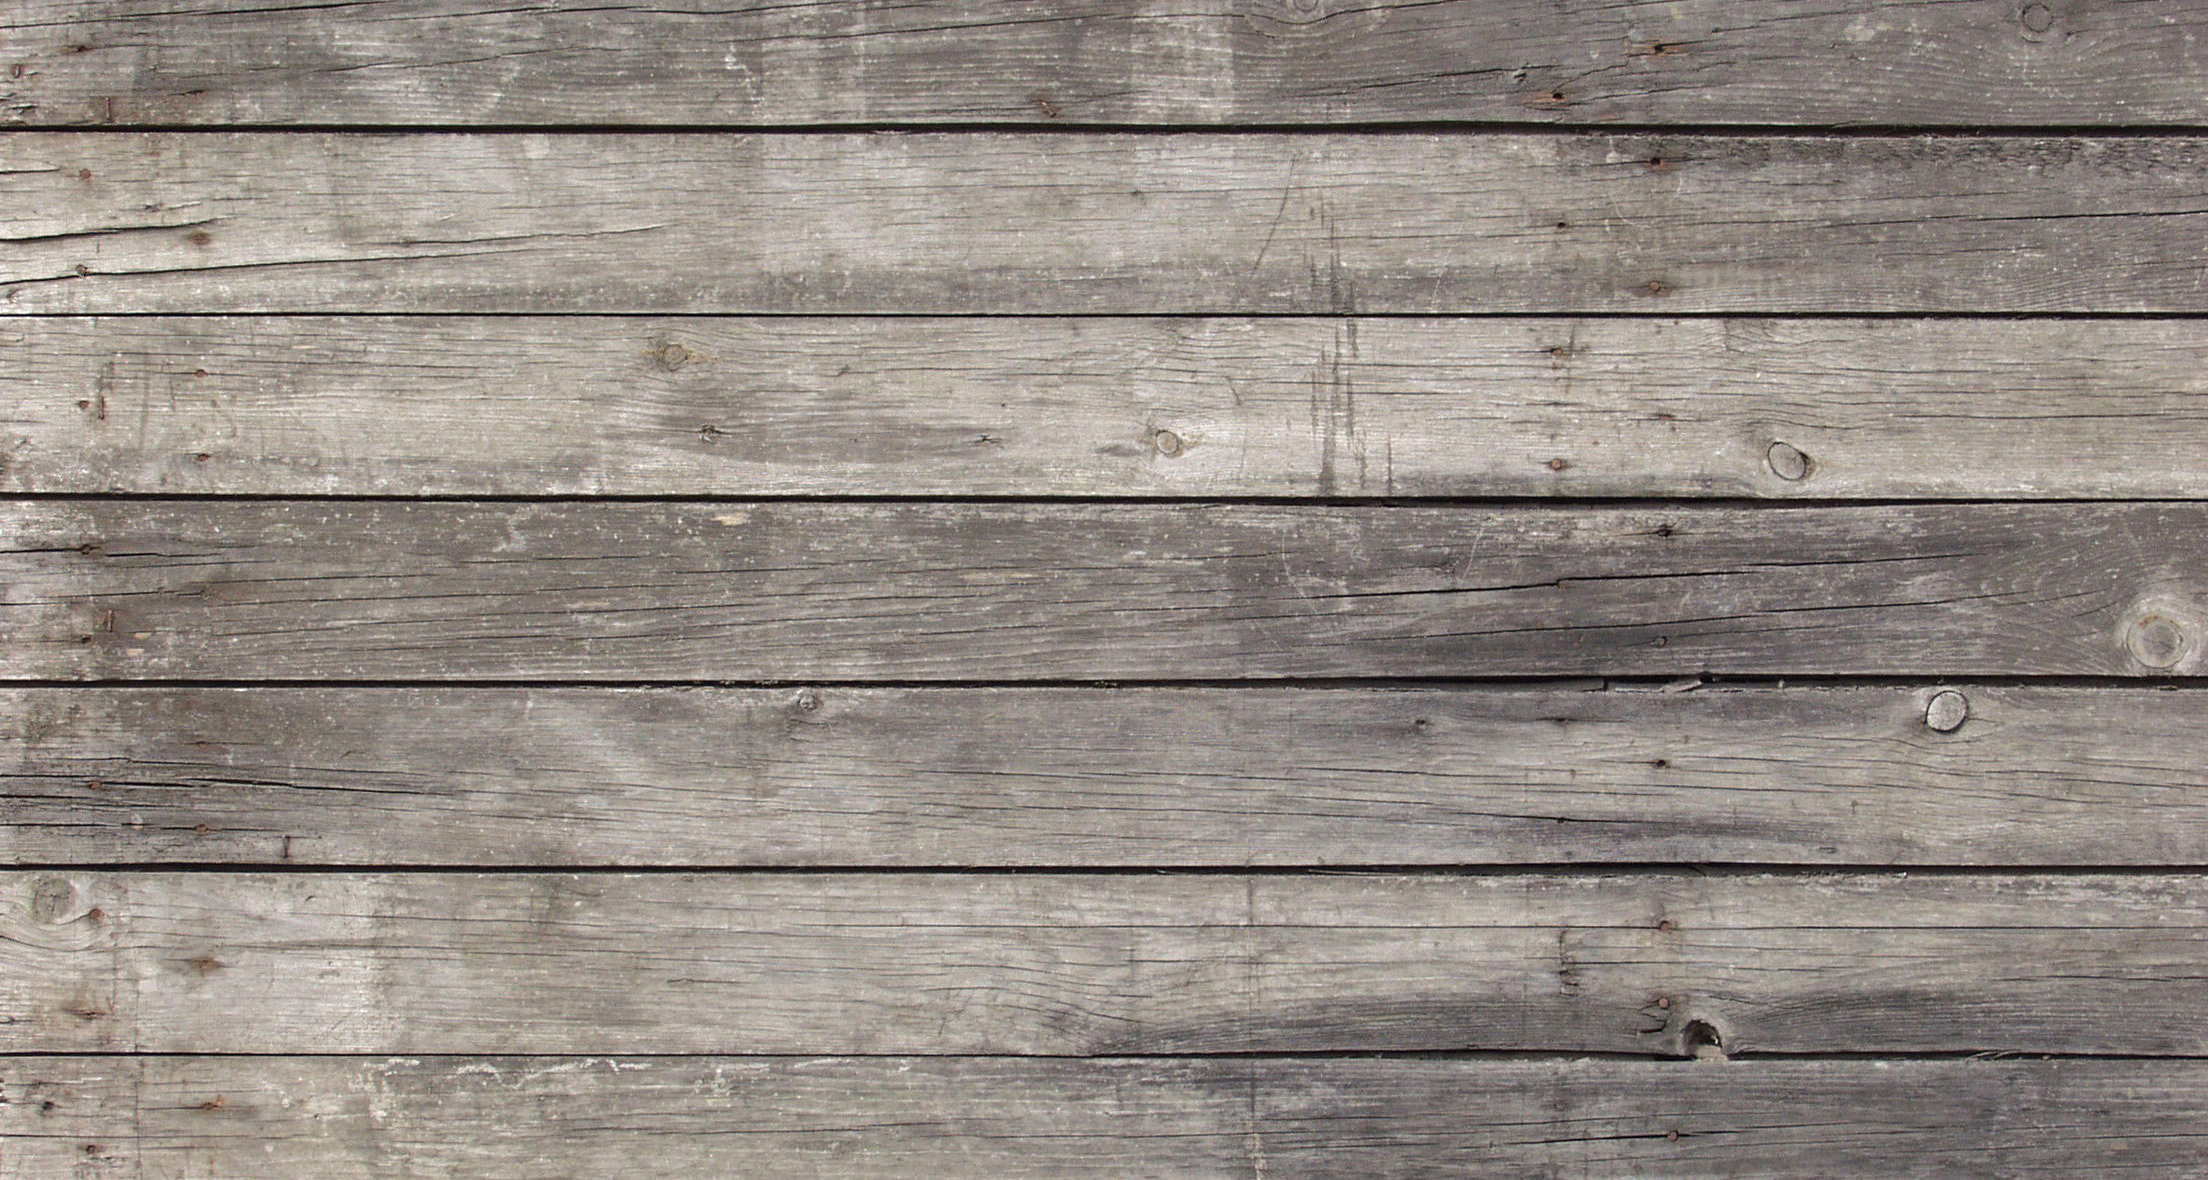 plank wooden texture 2208x1180